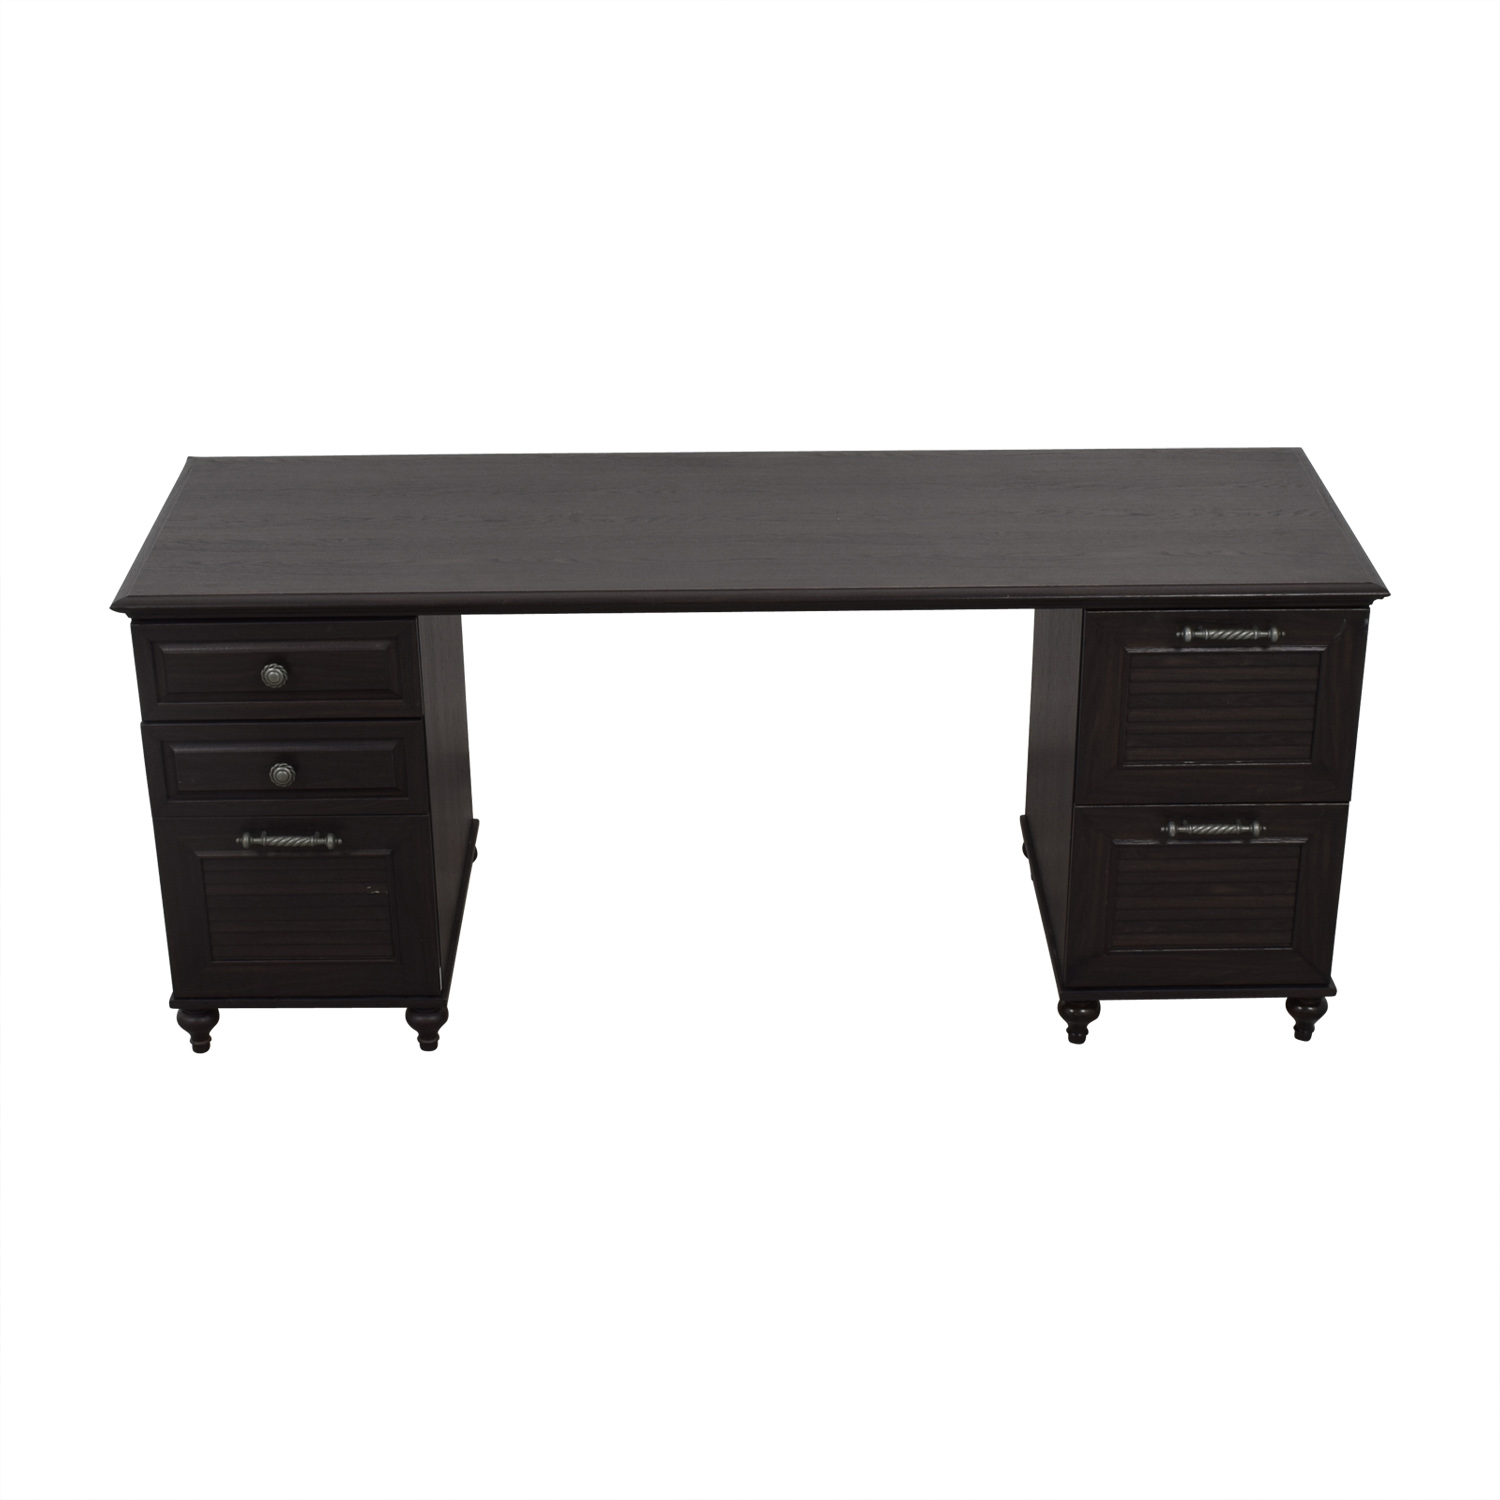 Cathy Ireland Black Desk With File Cabinets